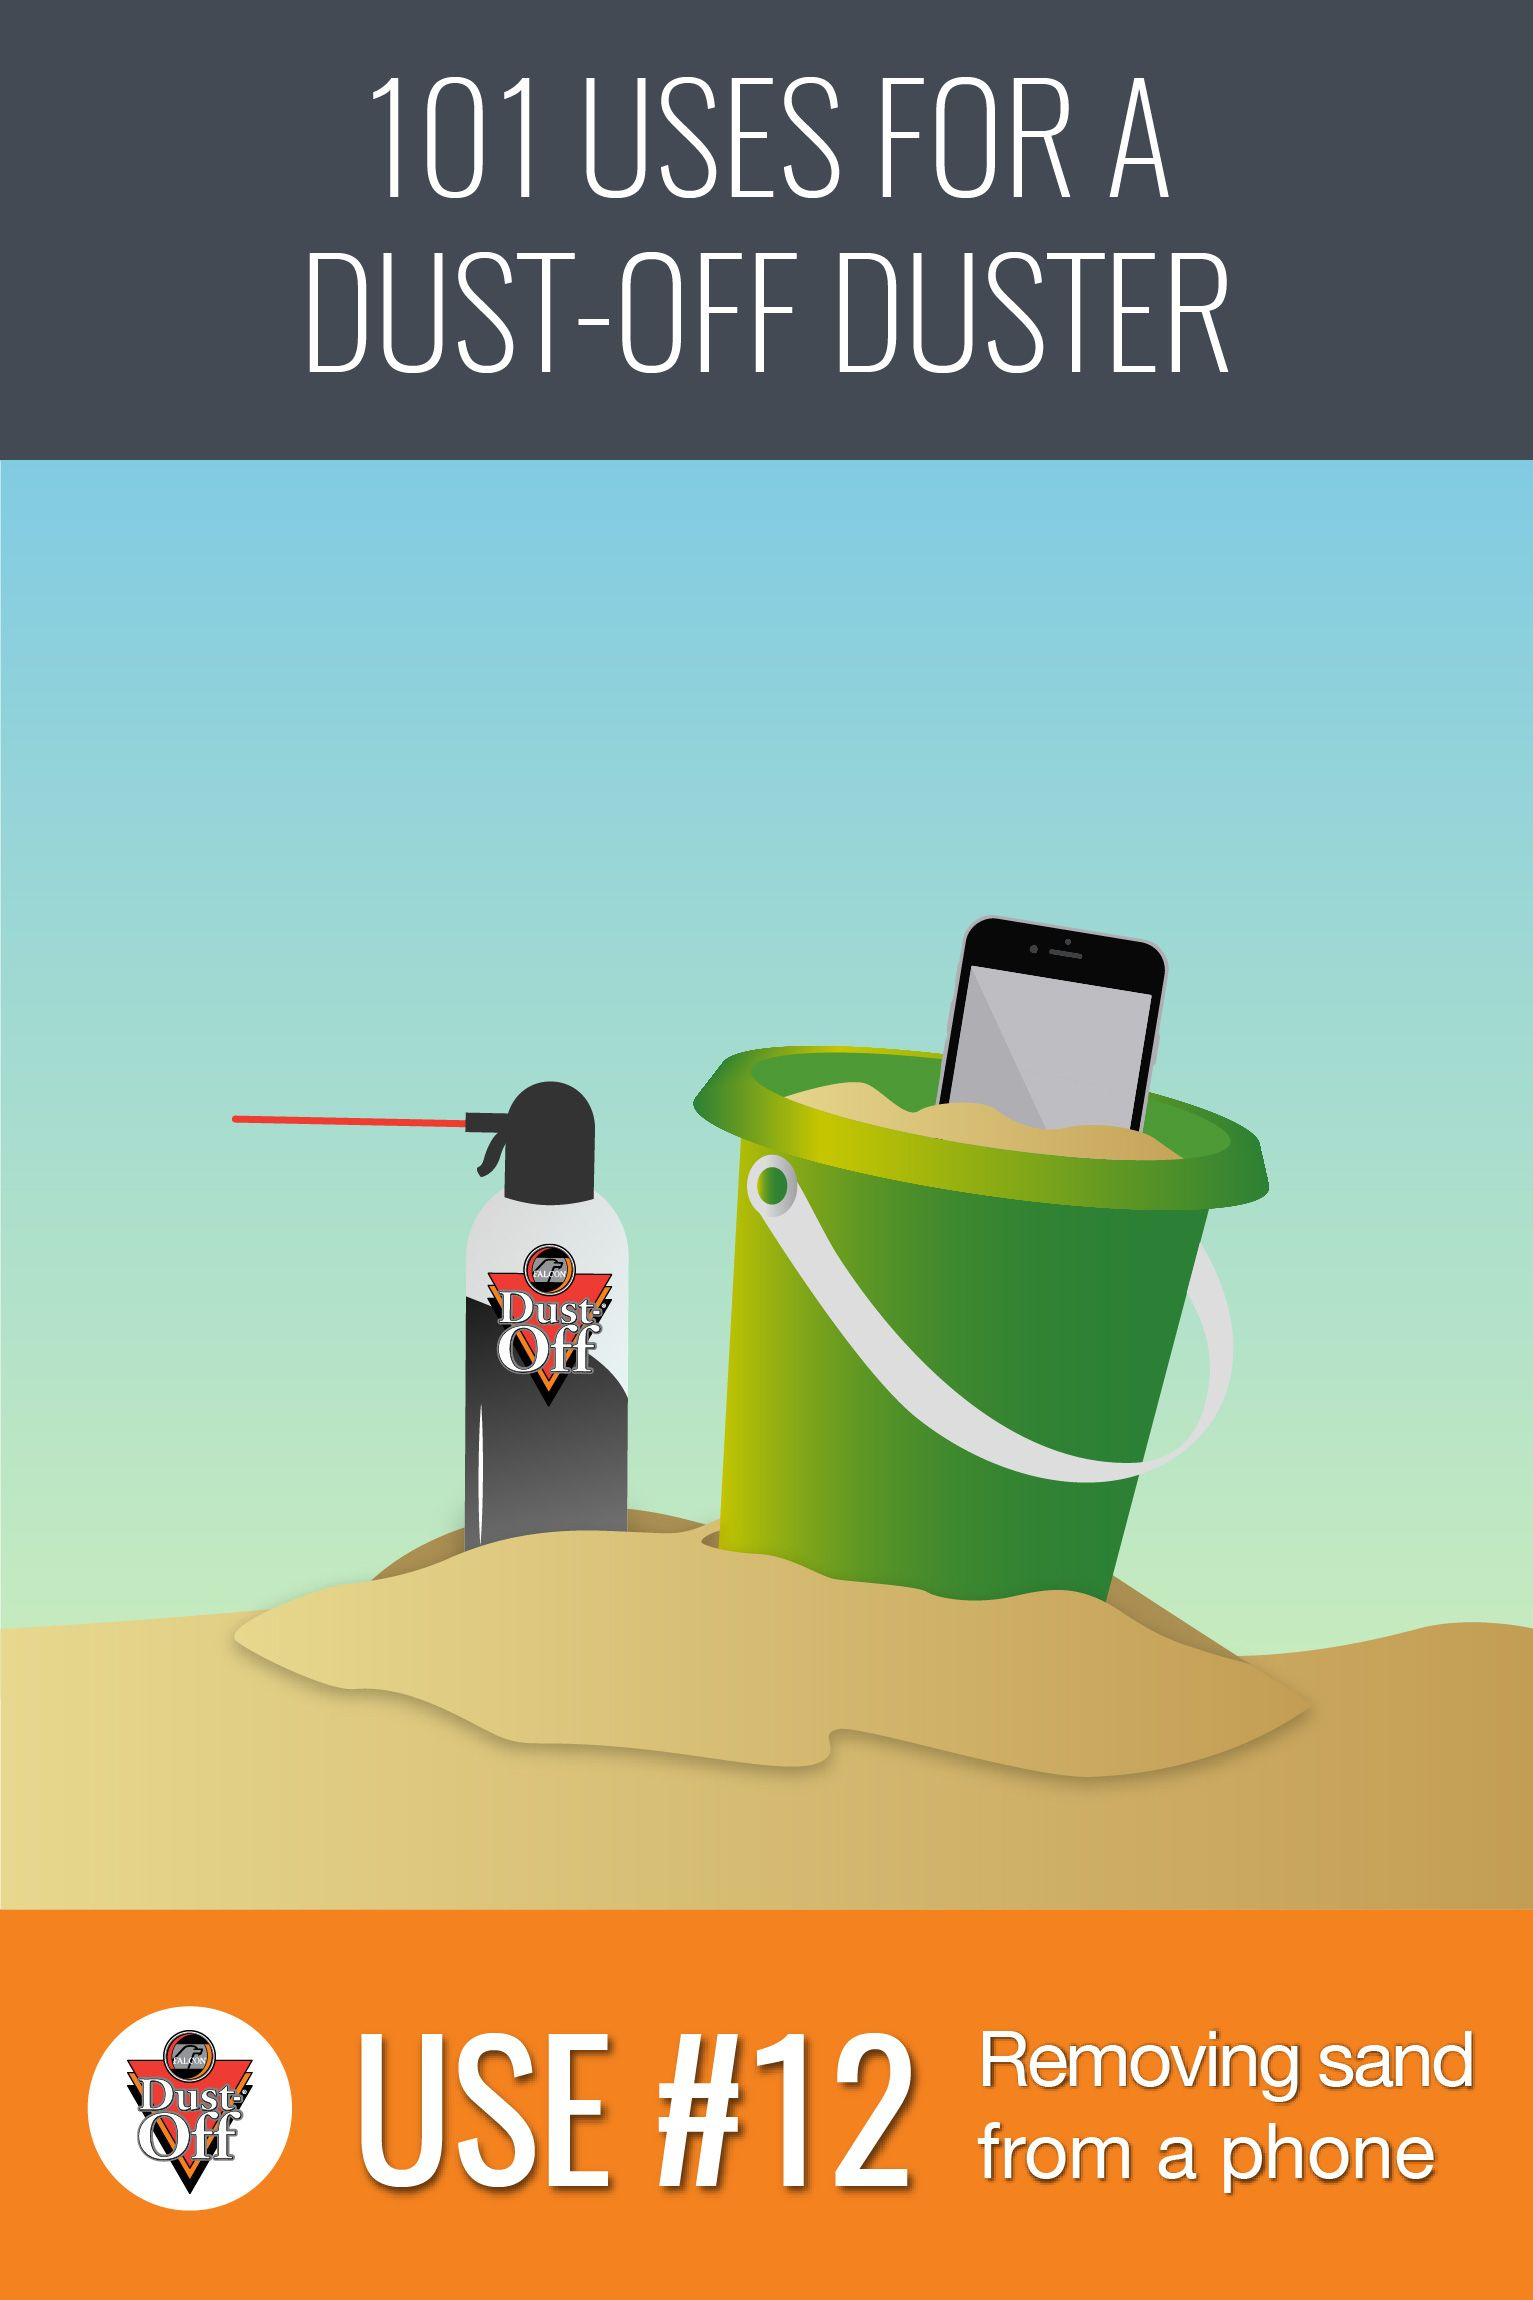 Use 12 of 101 for Dust-Off Dusters: Getting sand out of your phone! Beach trips are full of fun, but getting sand stuck in all your electronics isn't. With a blast from a Dust-Off Duster, you can get sand out of all the small ports in your phone and other electronics.